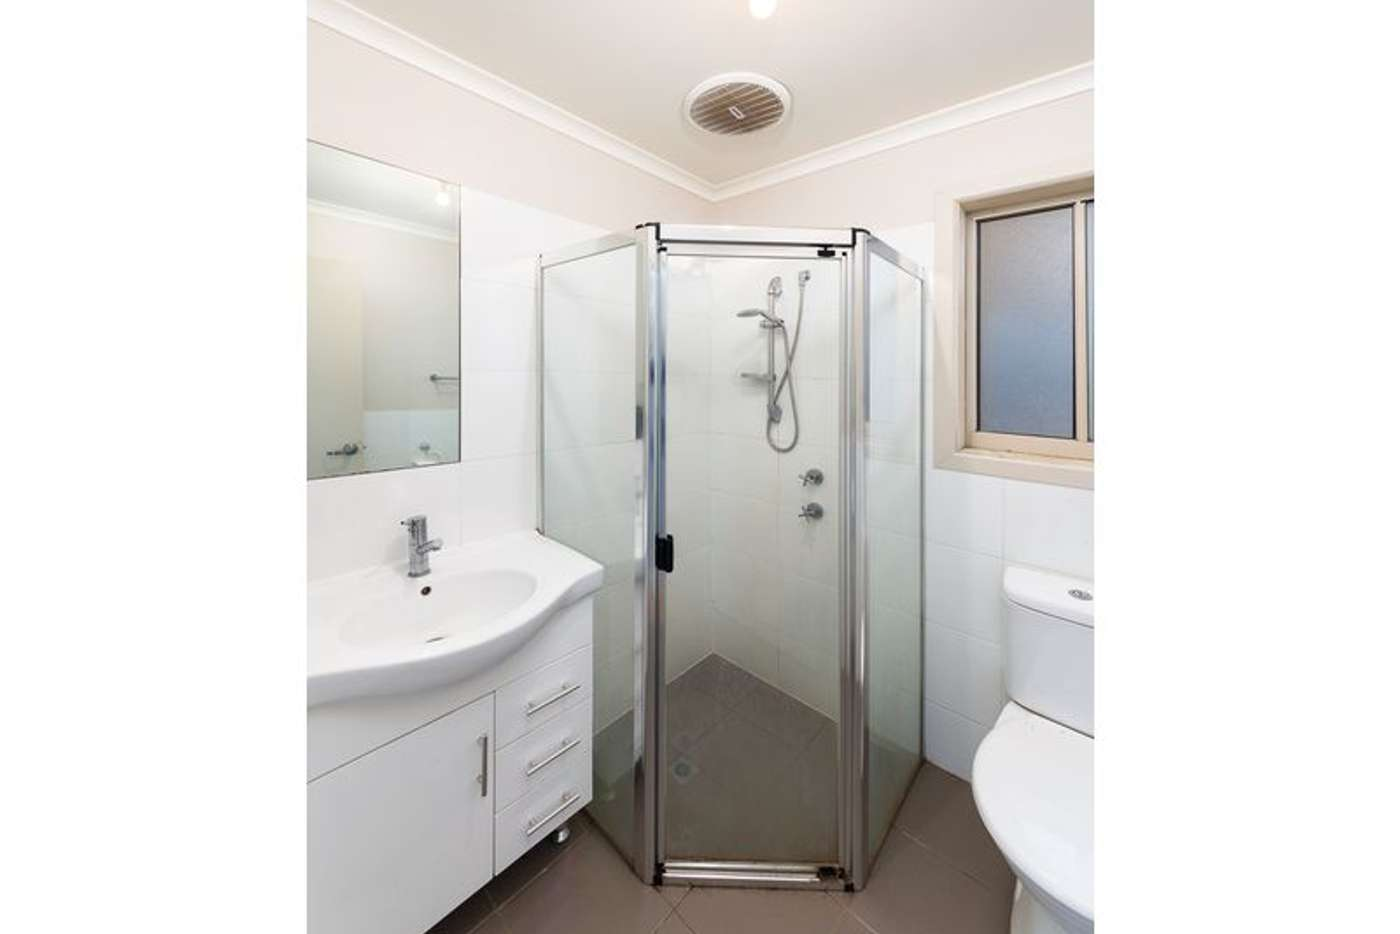 Fifth view of Homely house listing, 1 Sydney Road, Nairne SA 5252